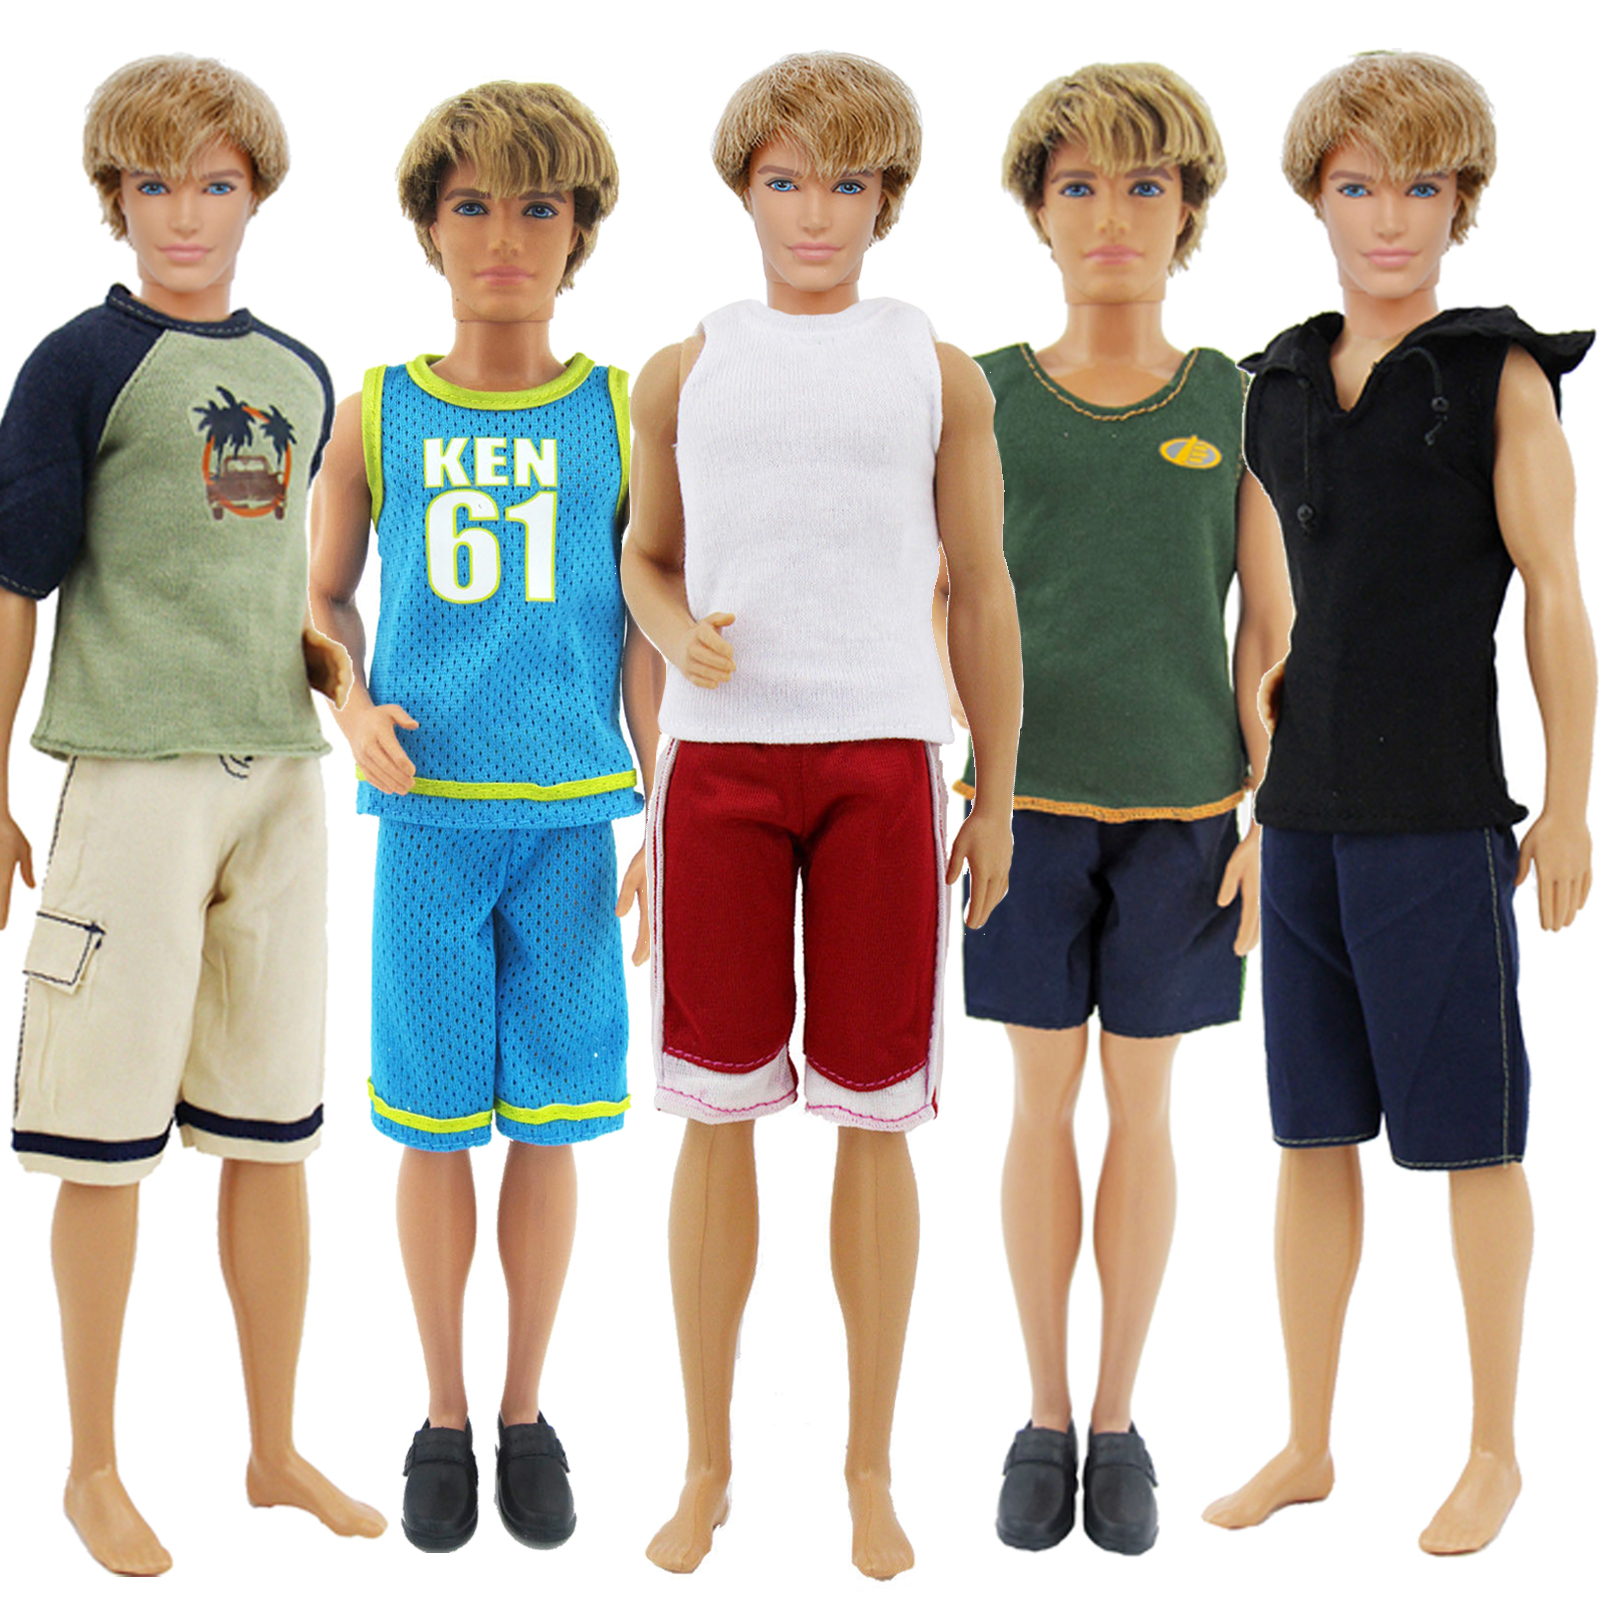 1 Set Random Outfit Daily Casual Sports Wear Short Sleeves Shirt + Shorts Summer Cool Clothes For Barbie Doll Ken Accessories